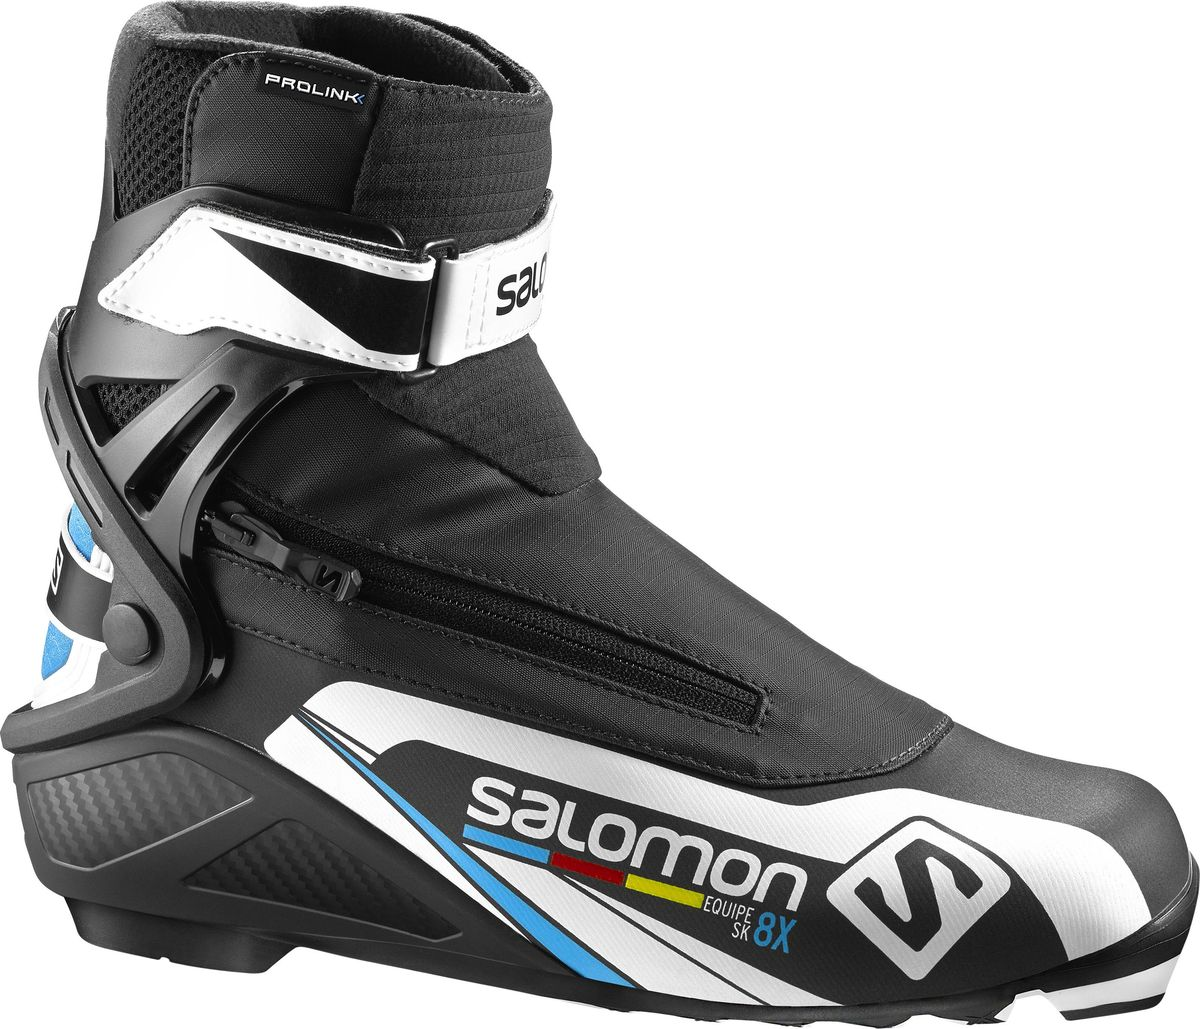 Ботинки для беговых лыж Salomon Equipe 8X Skate Prolink, цвет: черный. Размер 10,5 (44) 4pcs set skin care set shrink pores moisturizing anti aging anti wrinkle eye cream lotion toner cleanser whitening face cream